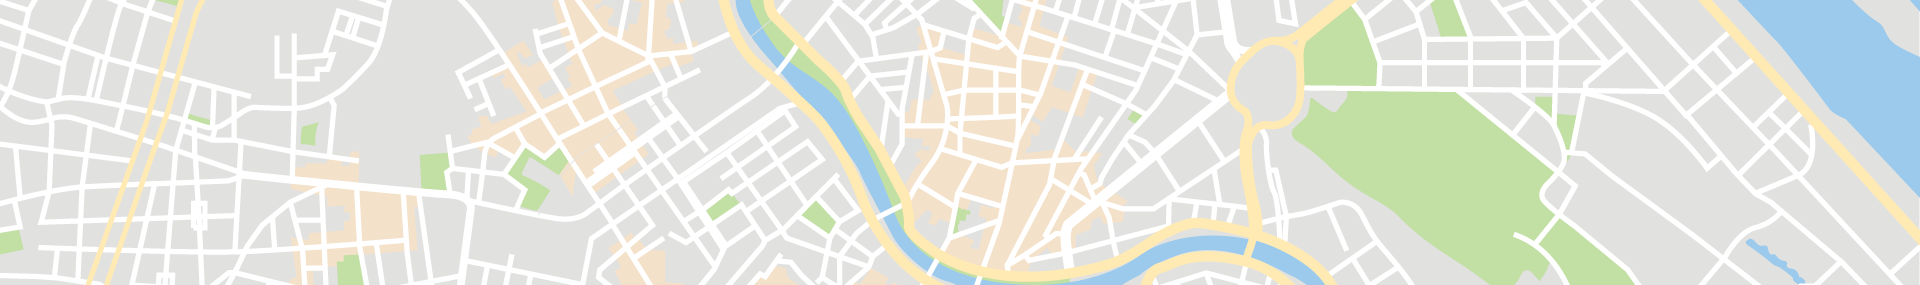 Illustrated map, top down showing streets and city features